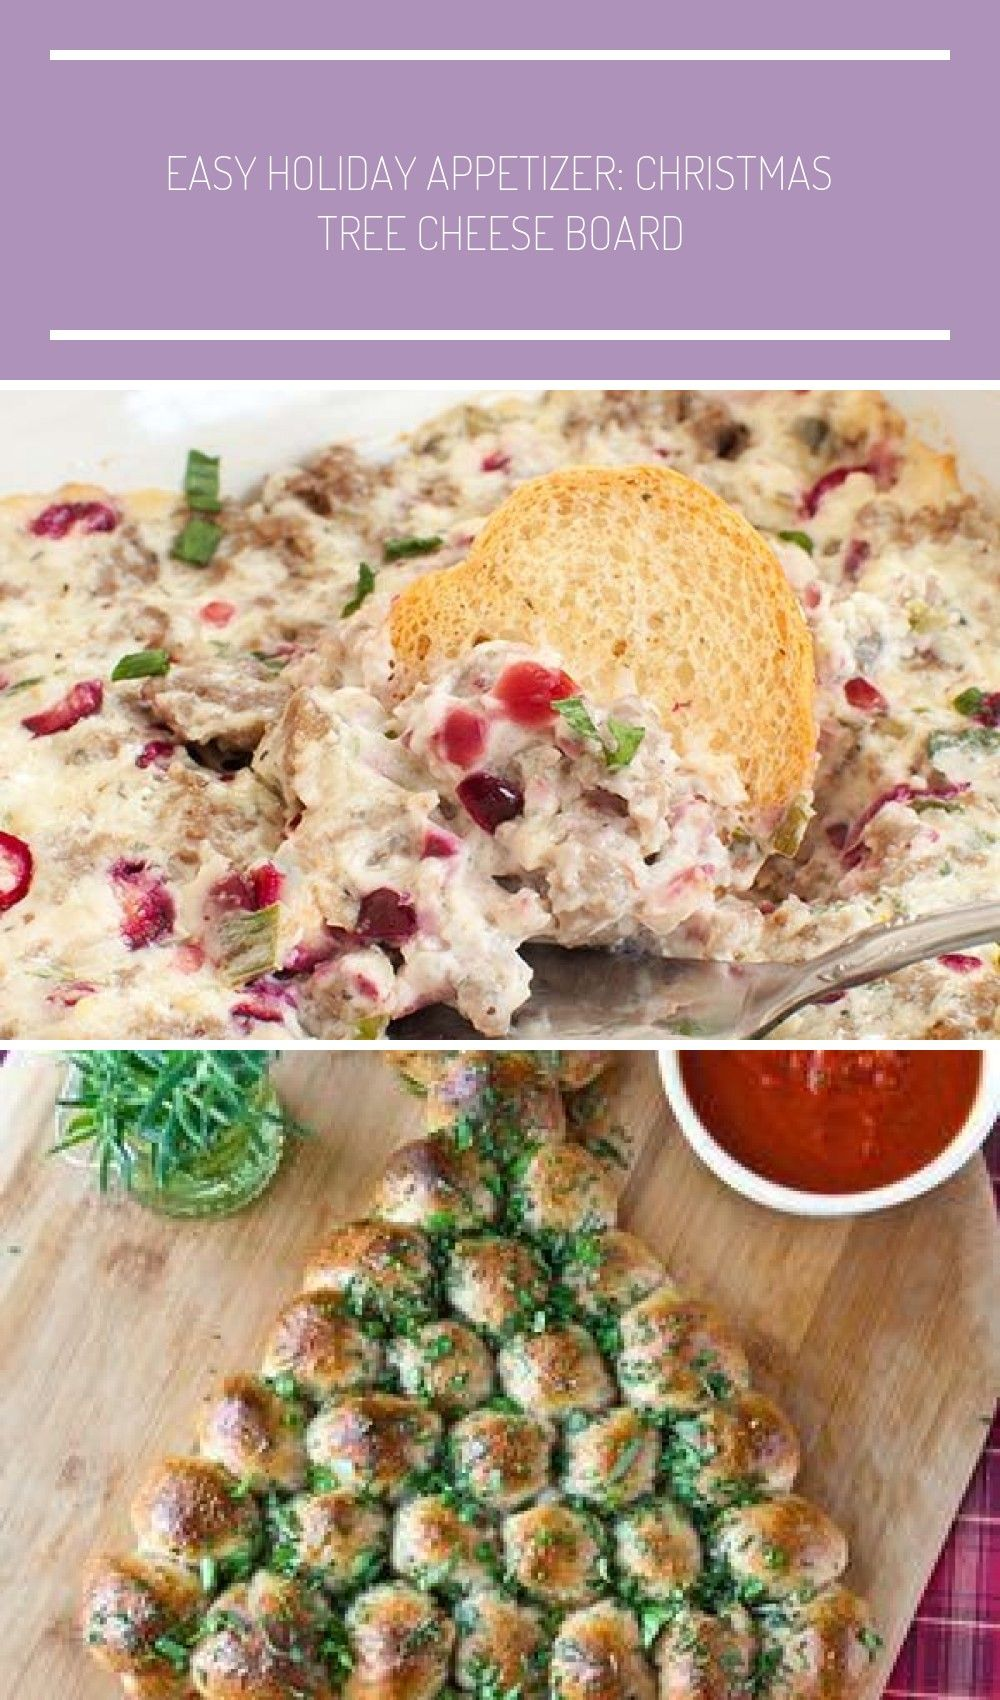 You'll LOVE this savory holiday appetizer! This easy Sausage Cranberry Cream Cheese Dip is cheesy,